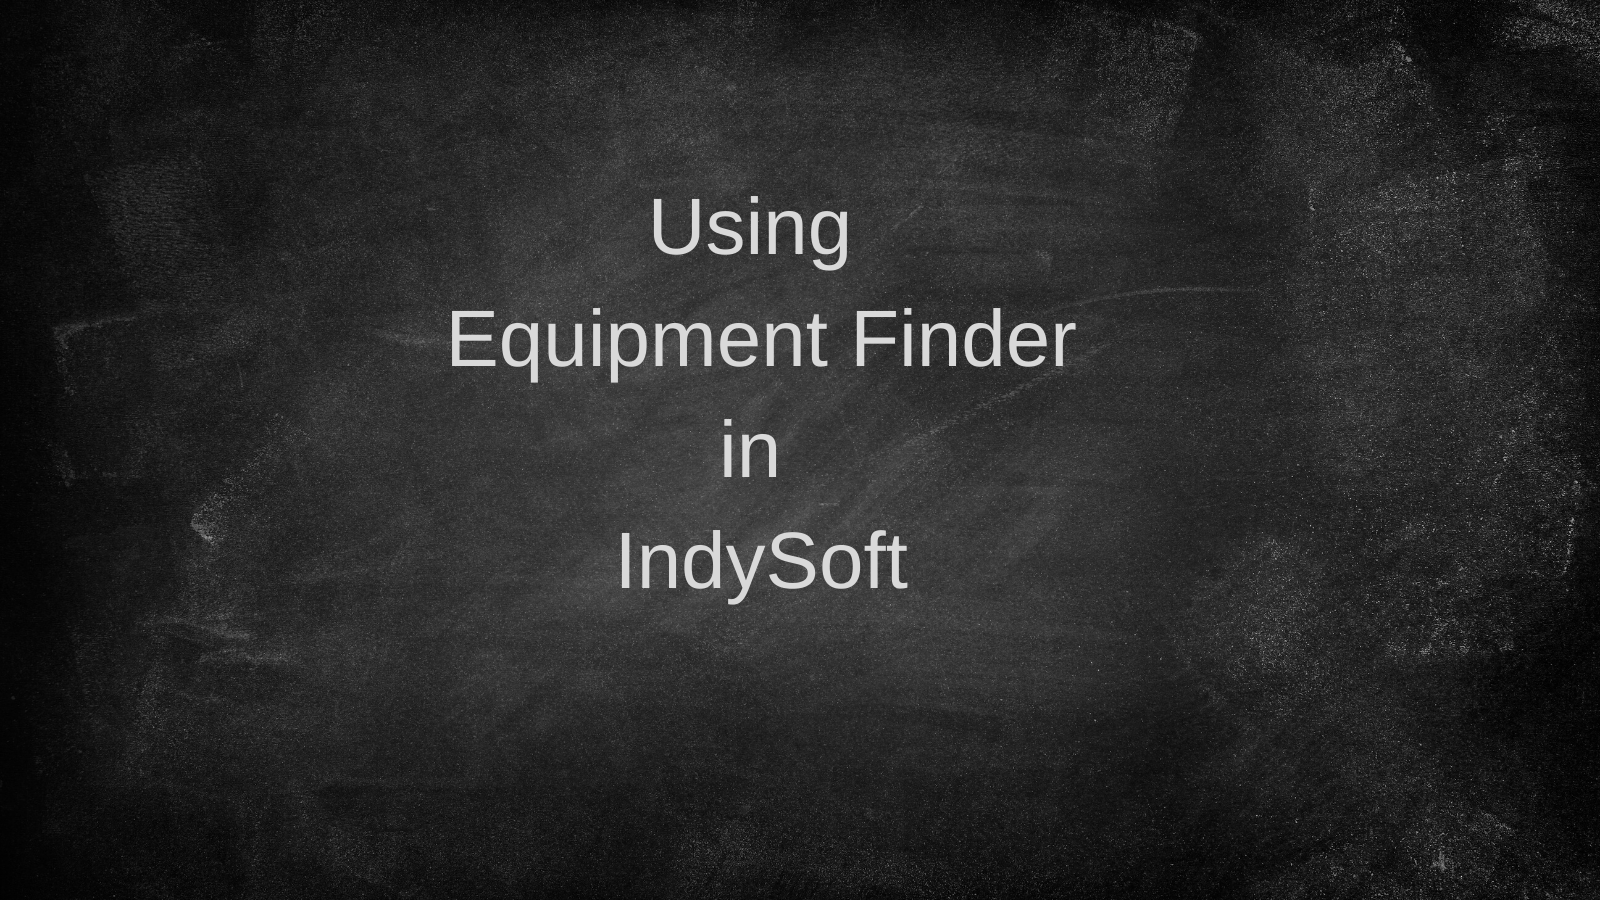 Read Only-Equipment Finder with captions